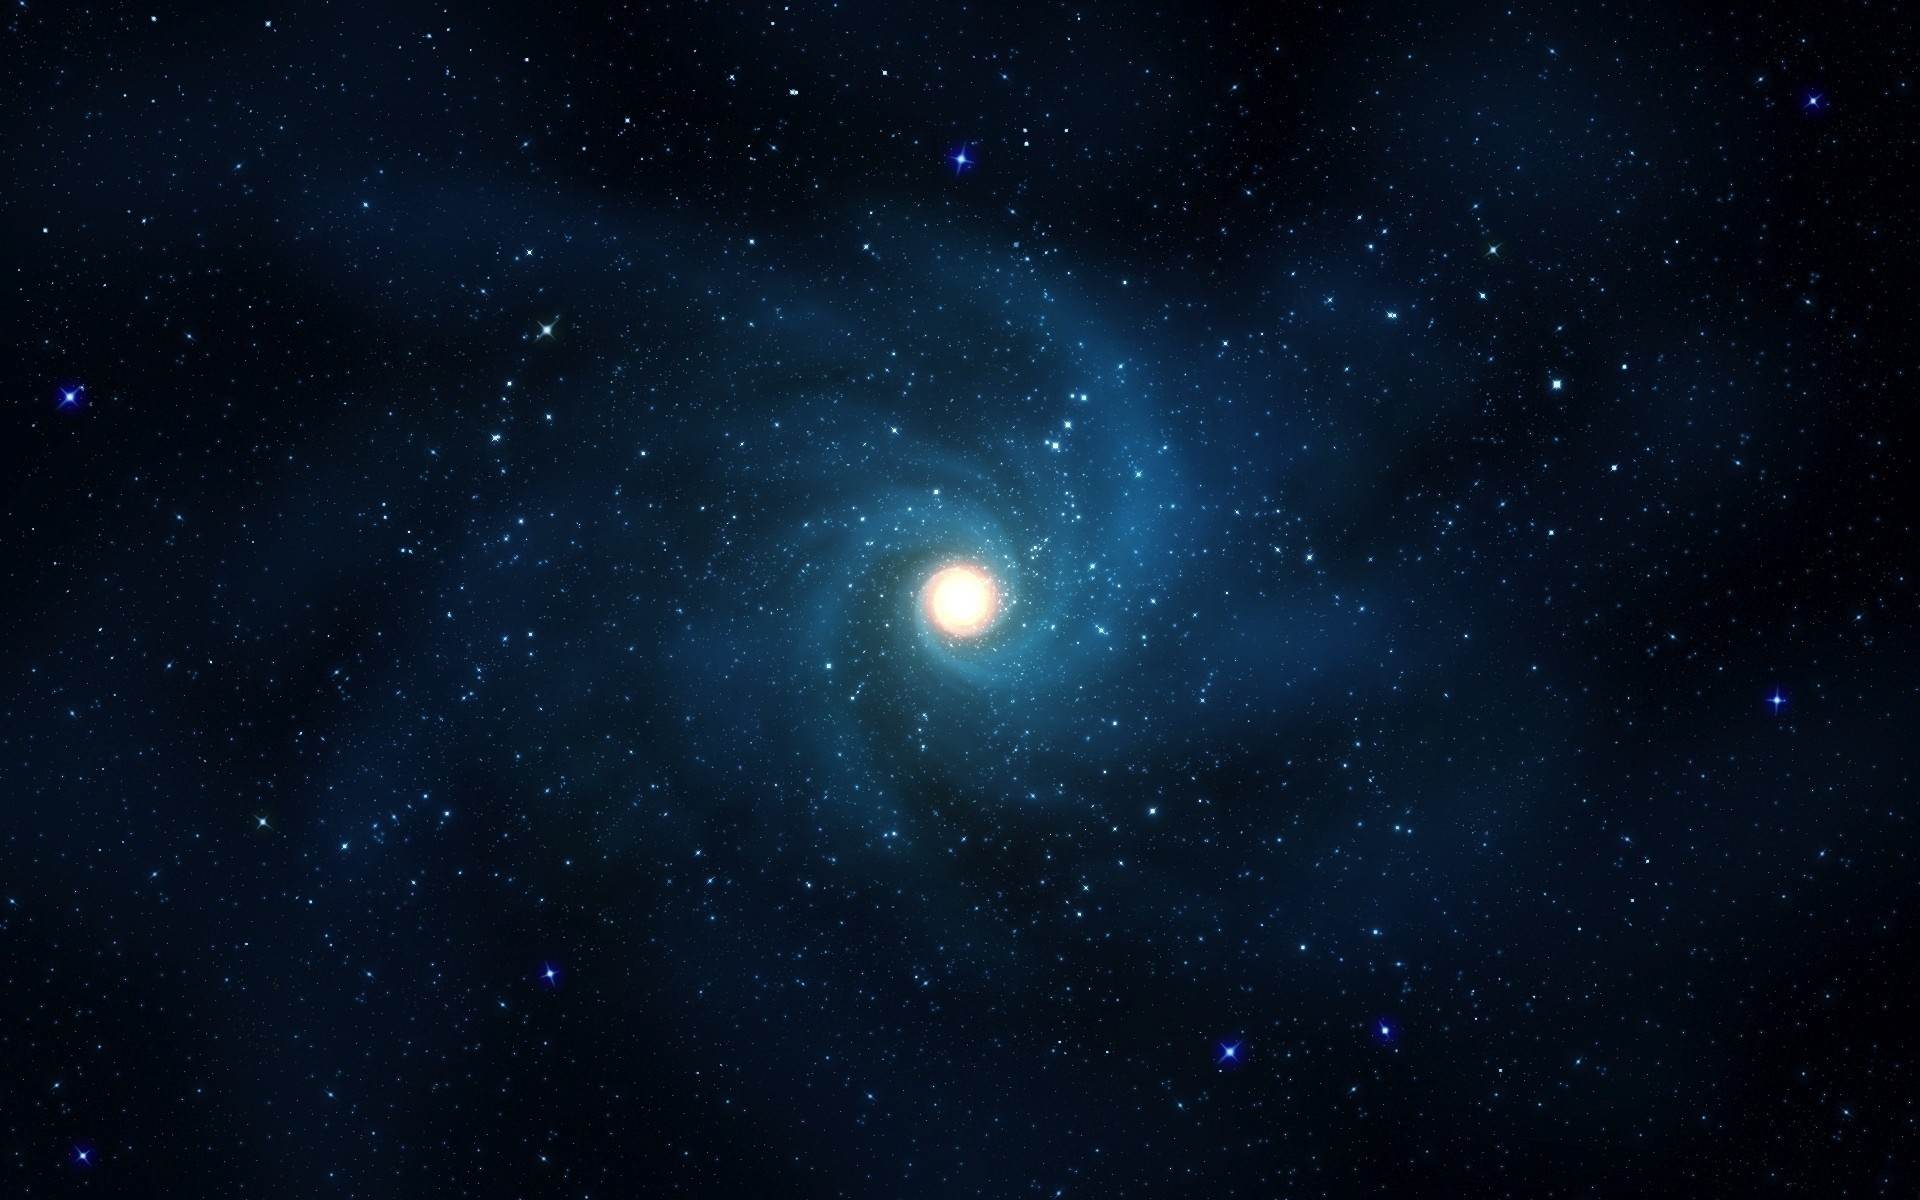 Space Art Free HD Wallpaper Super Awesome Images #7675